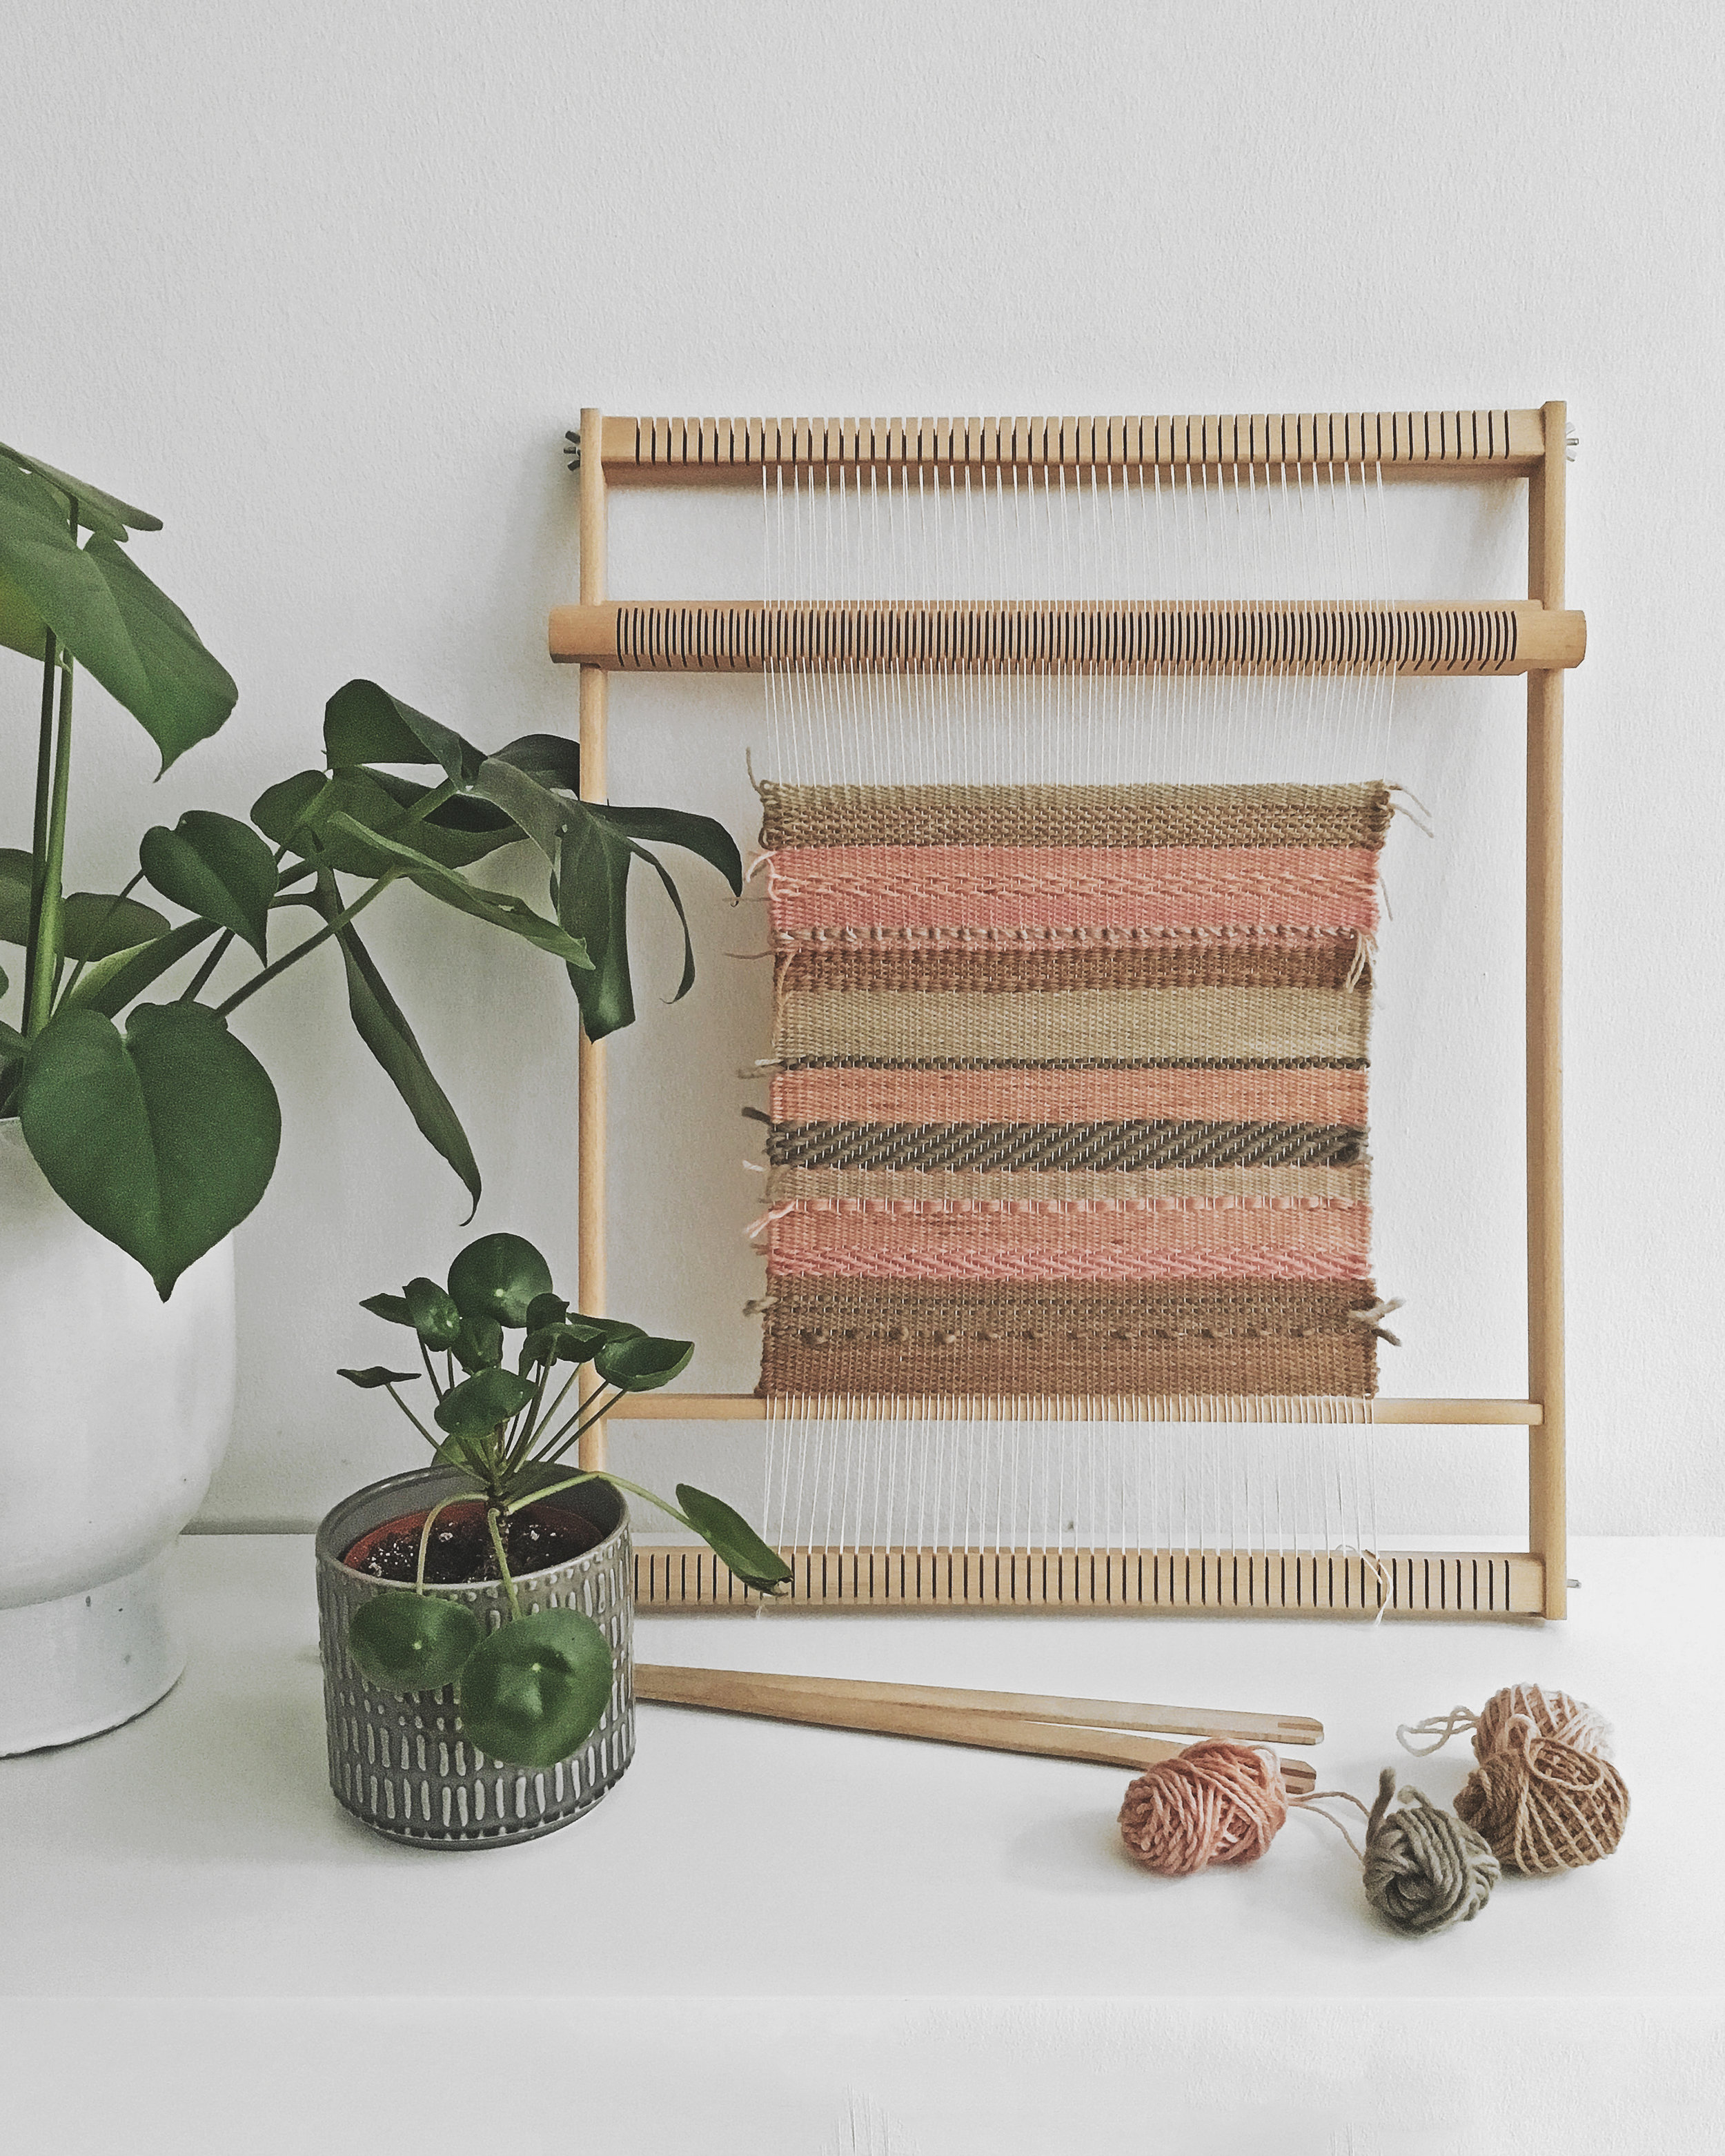 Daily weaving practice routine for self care and meditation